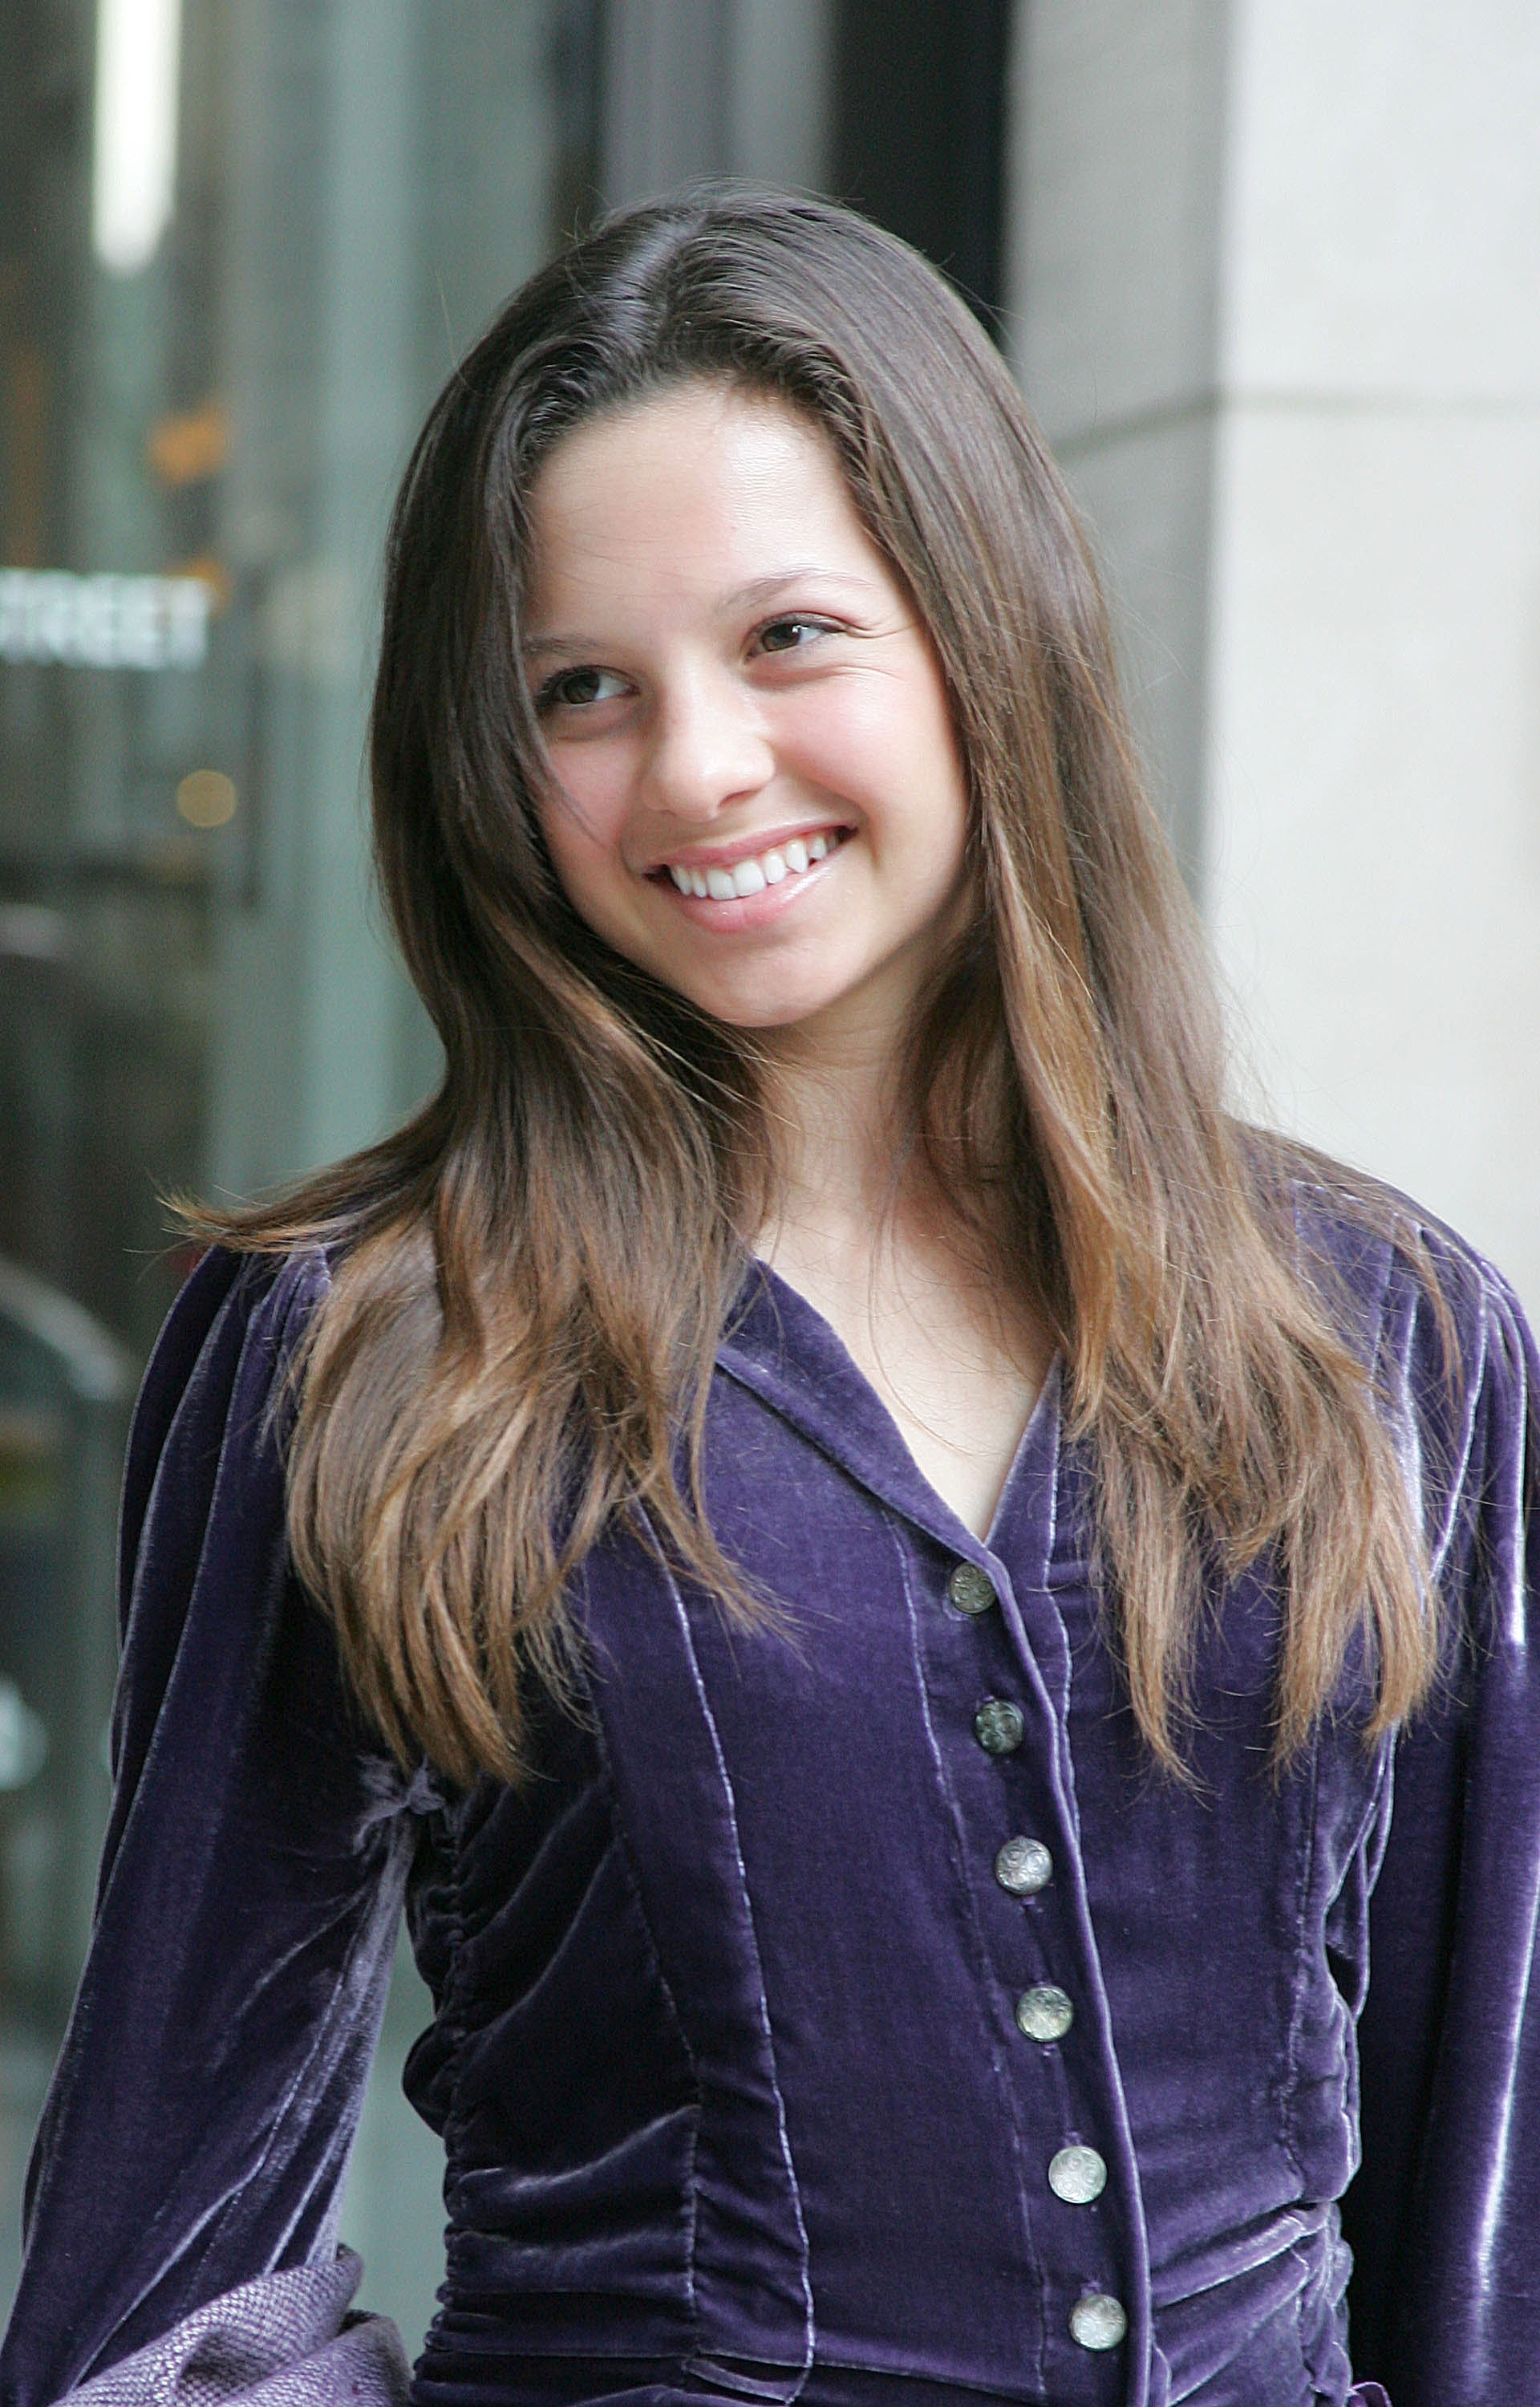 Photos de Mackenzie Rosman - Teen Peoples 20 Teens Who Will Change the World Awards Luncheon - 39